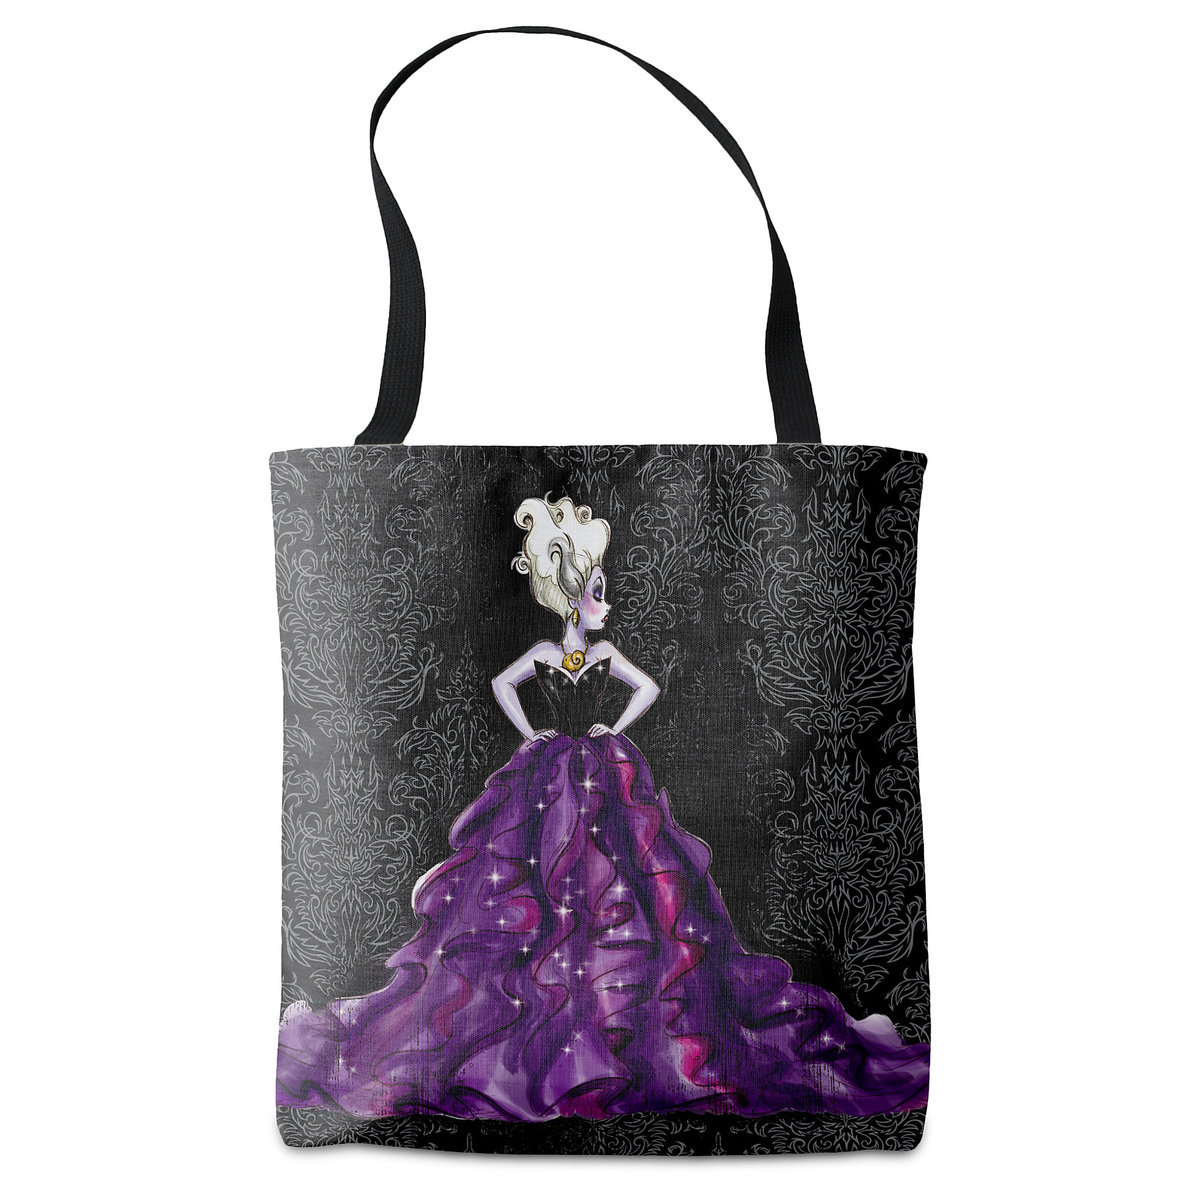 Adorable Tote Bags at shopDisney! 6